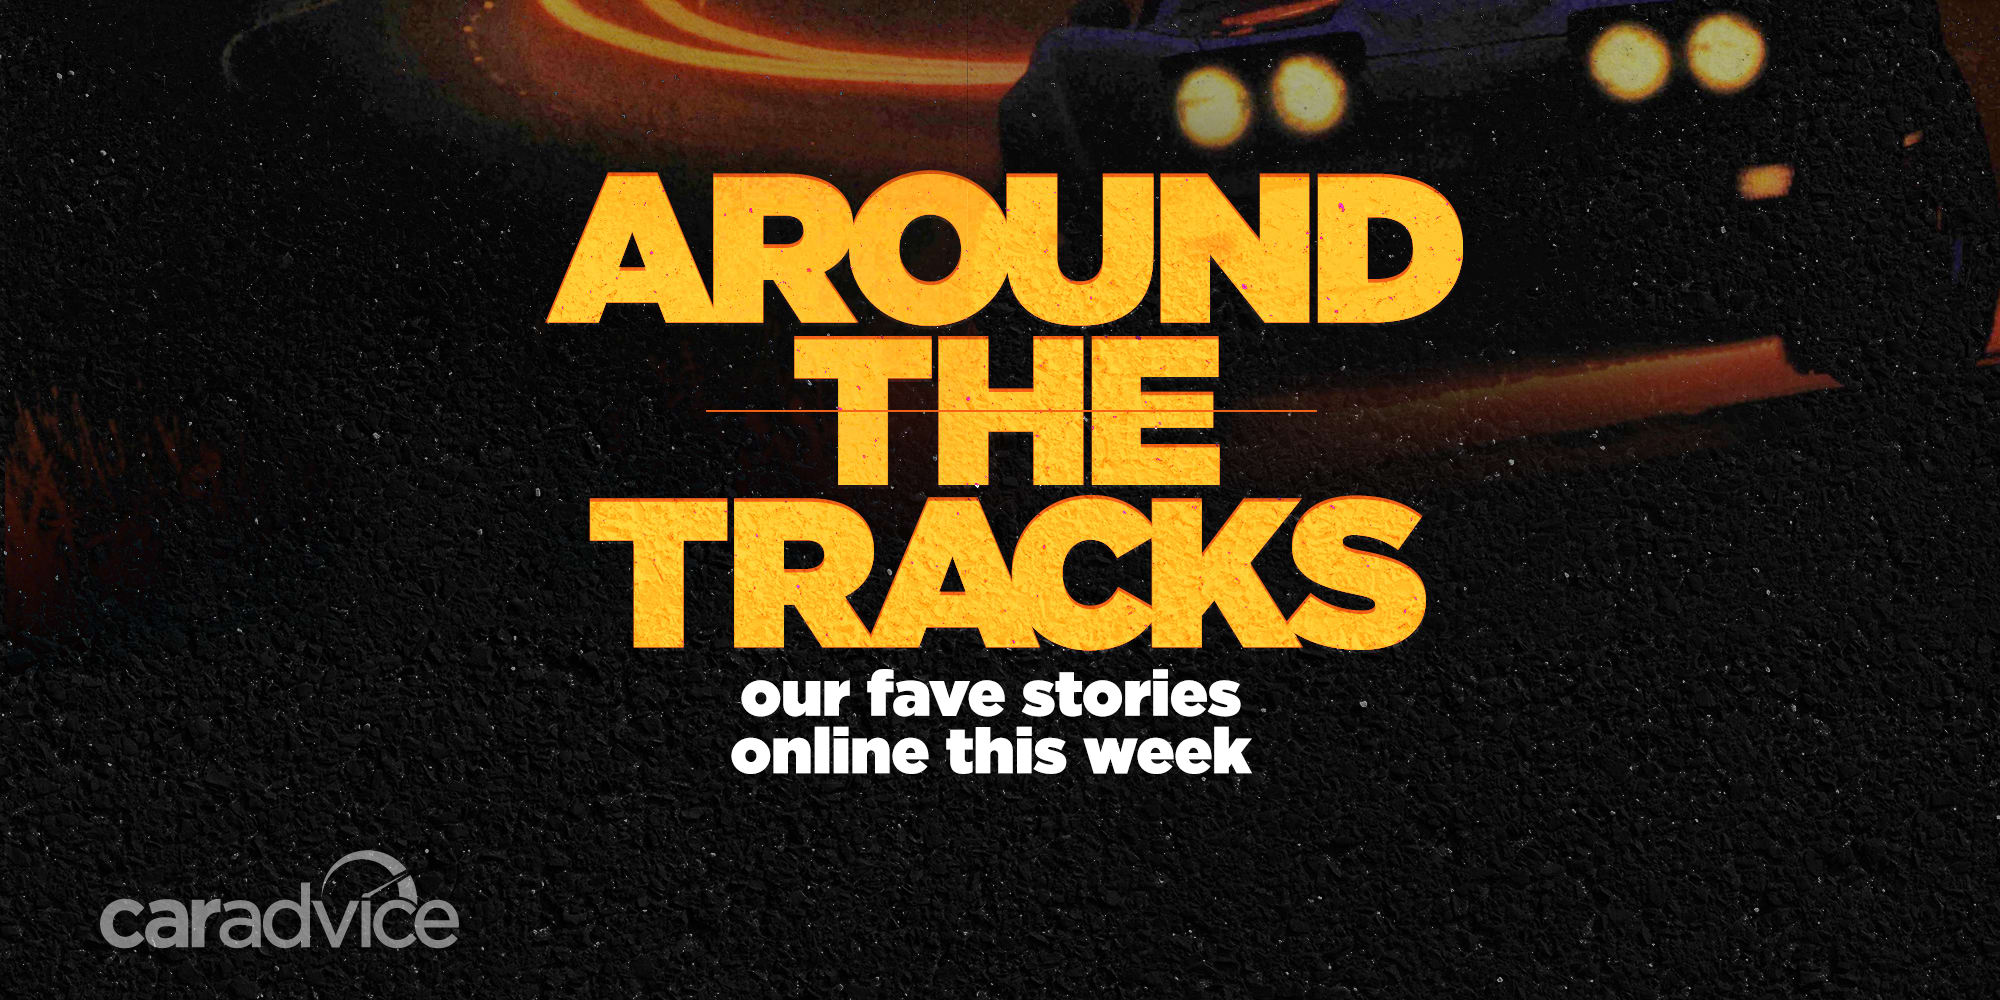 Around the tracks: How movie car chases have changed throughout time - 1 of 2